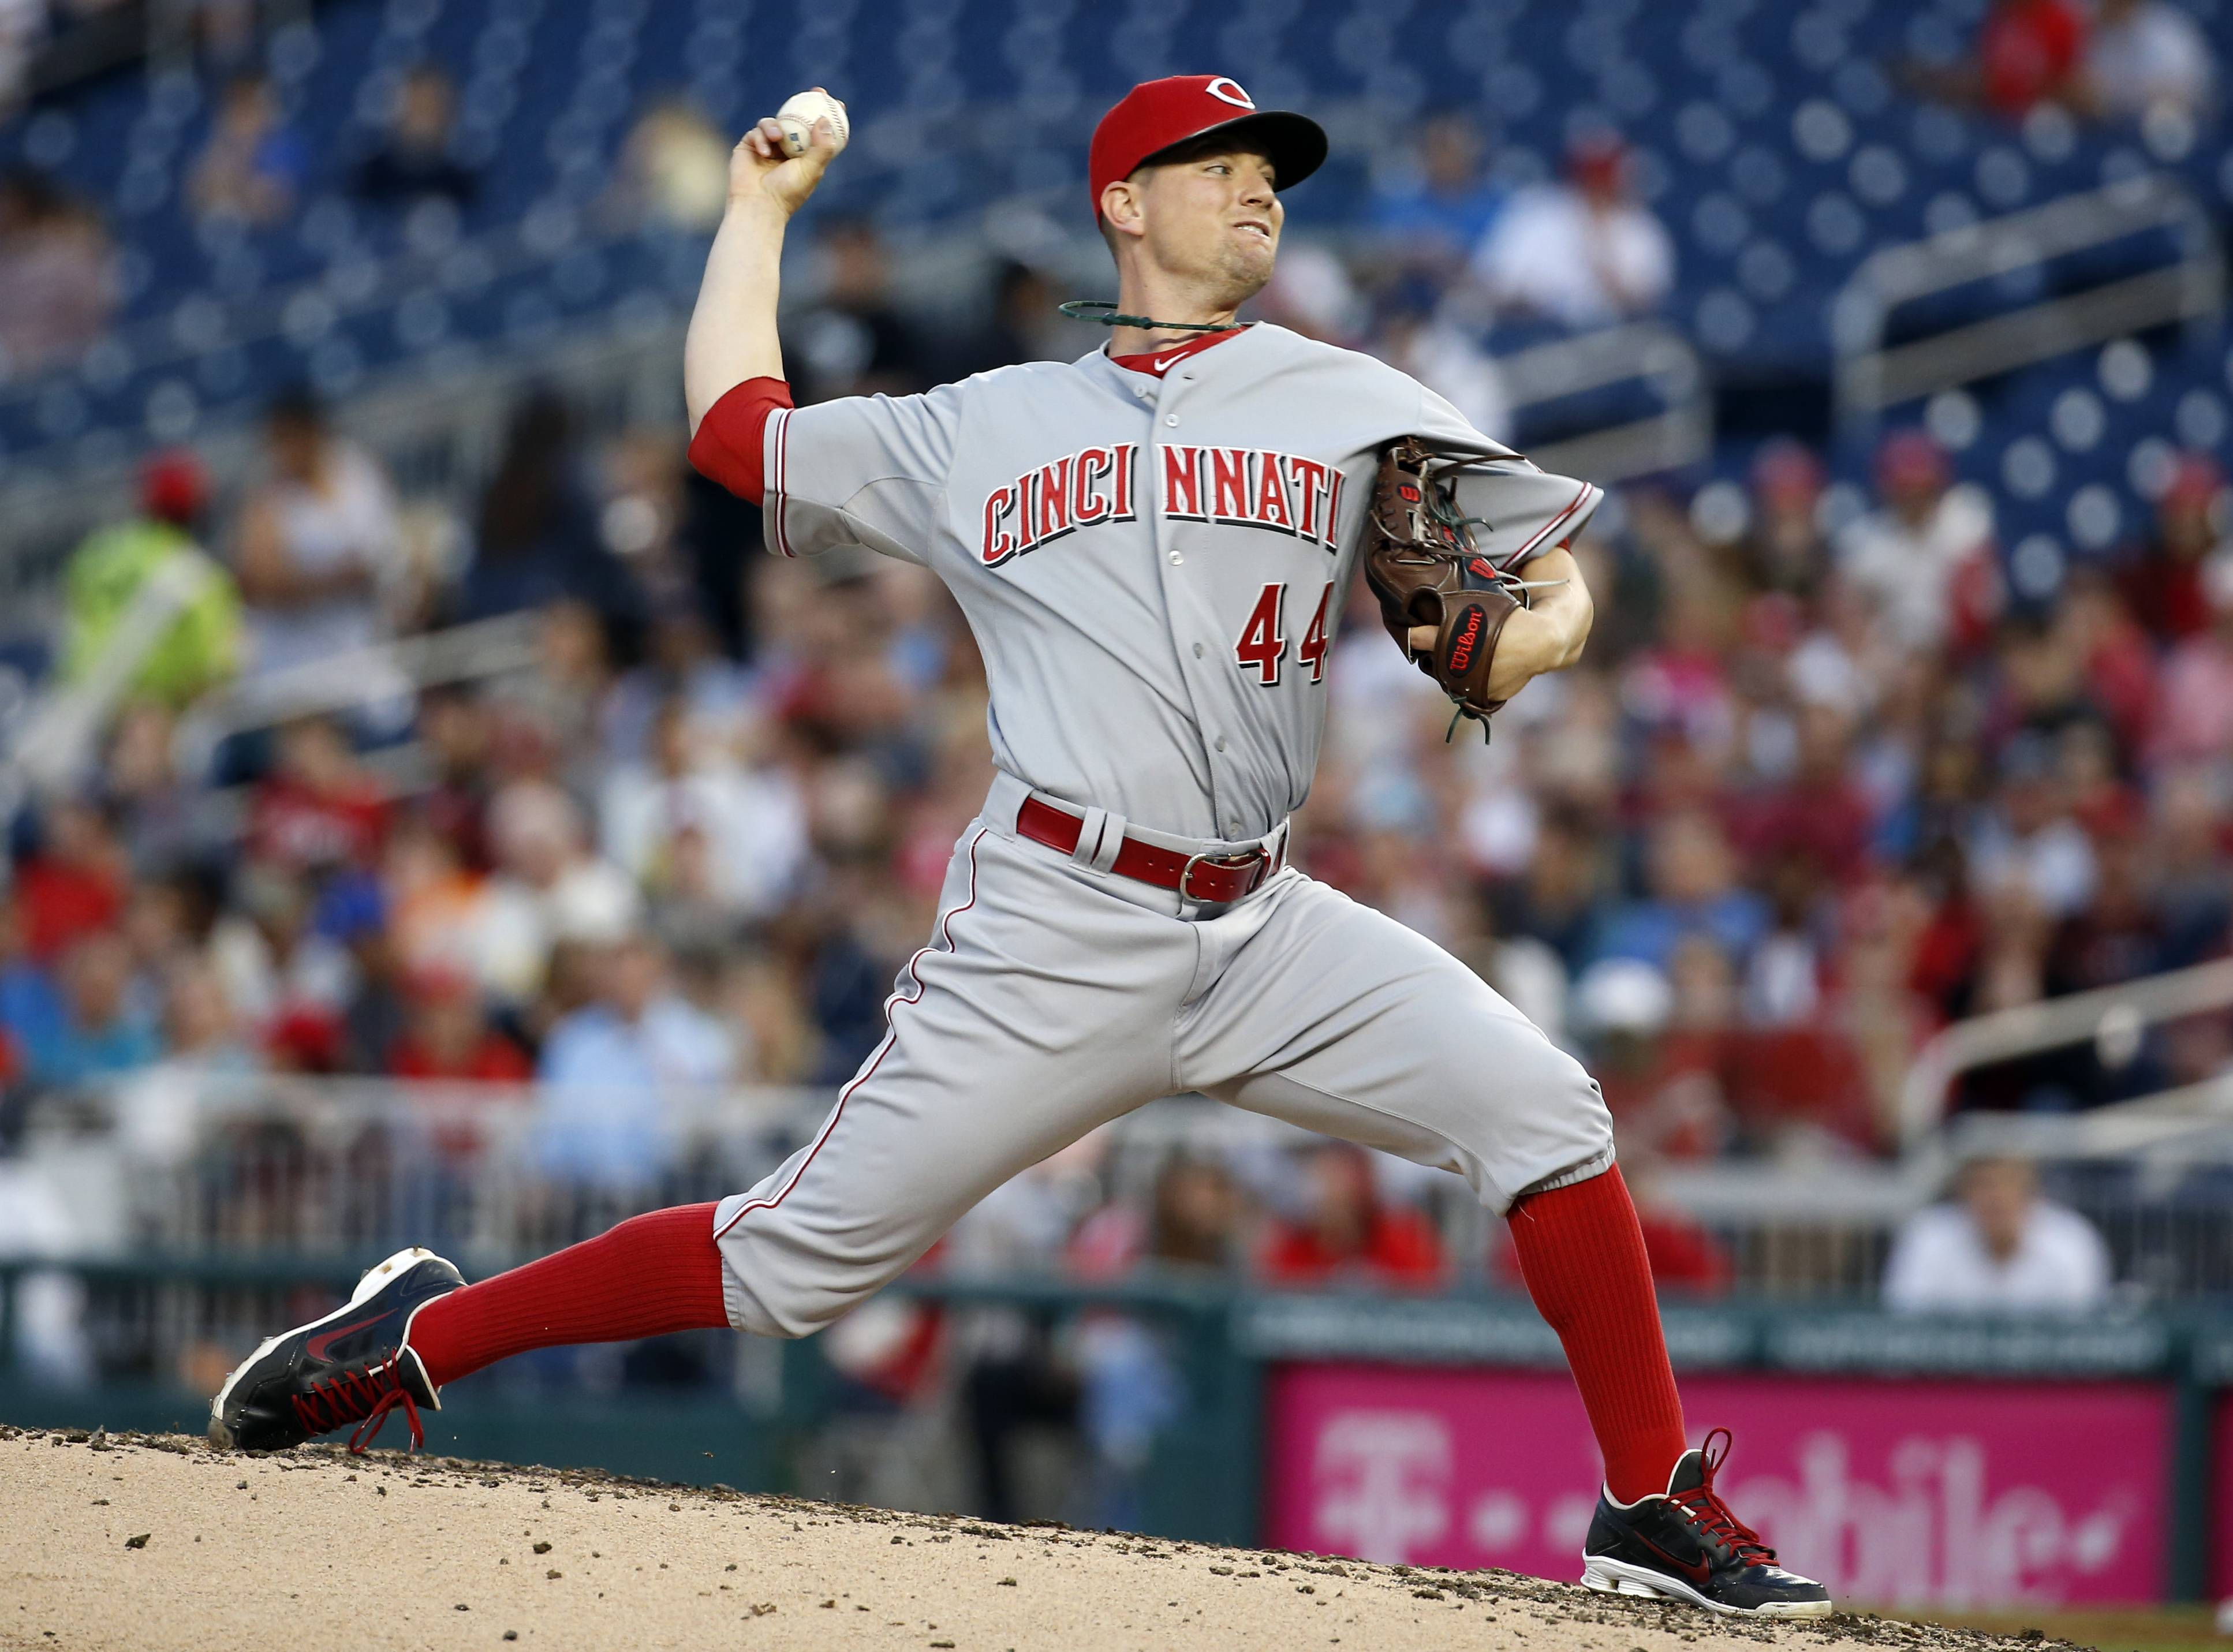 Cincinnati Reds starting pitcher Mike Leake (44) throws during the third inning of a baseball game against Monday the Washington Nationals at Nationals Park in Washington.